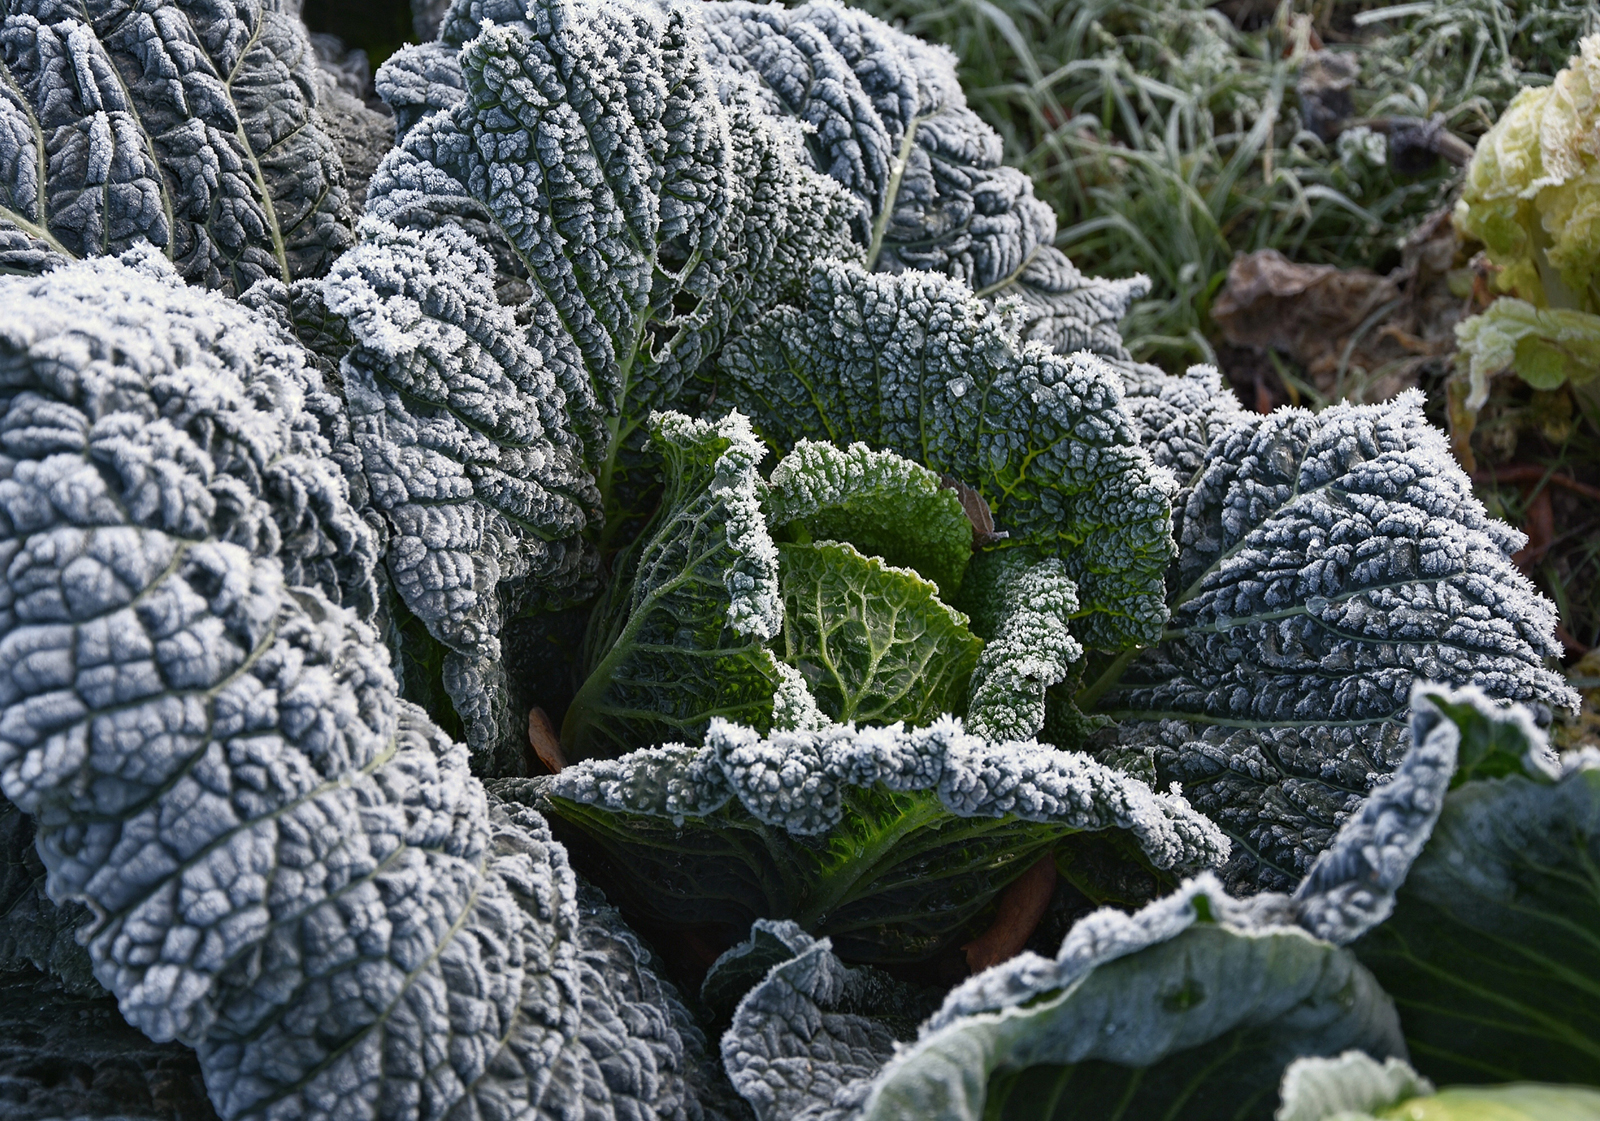 planning a winter vegetable garden image of a cabbage plant with frost on the leaves